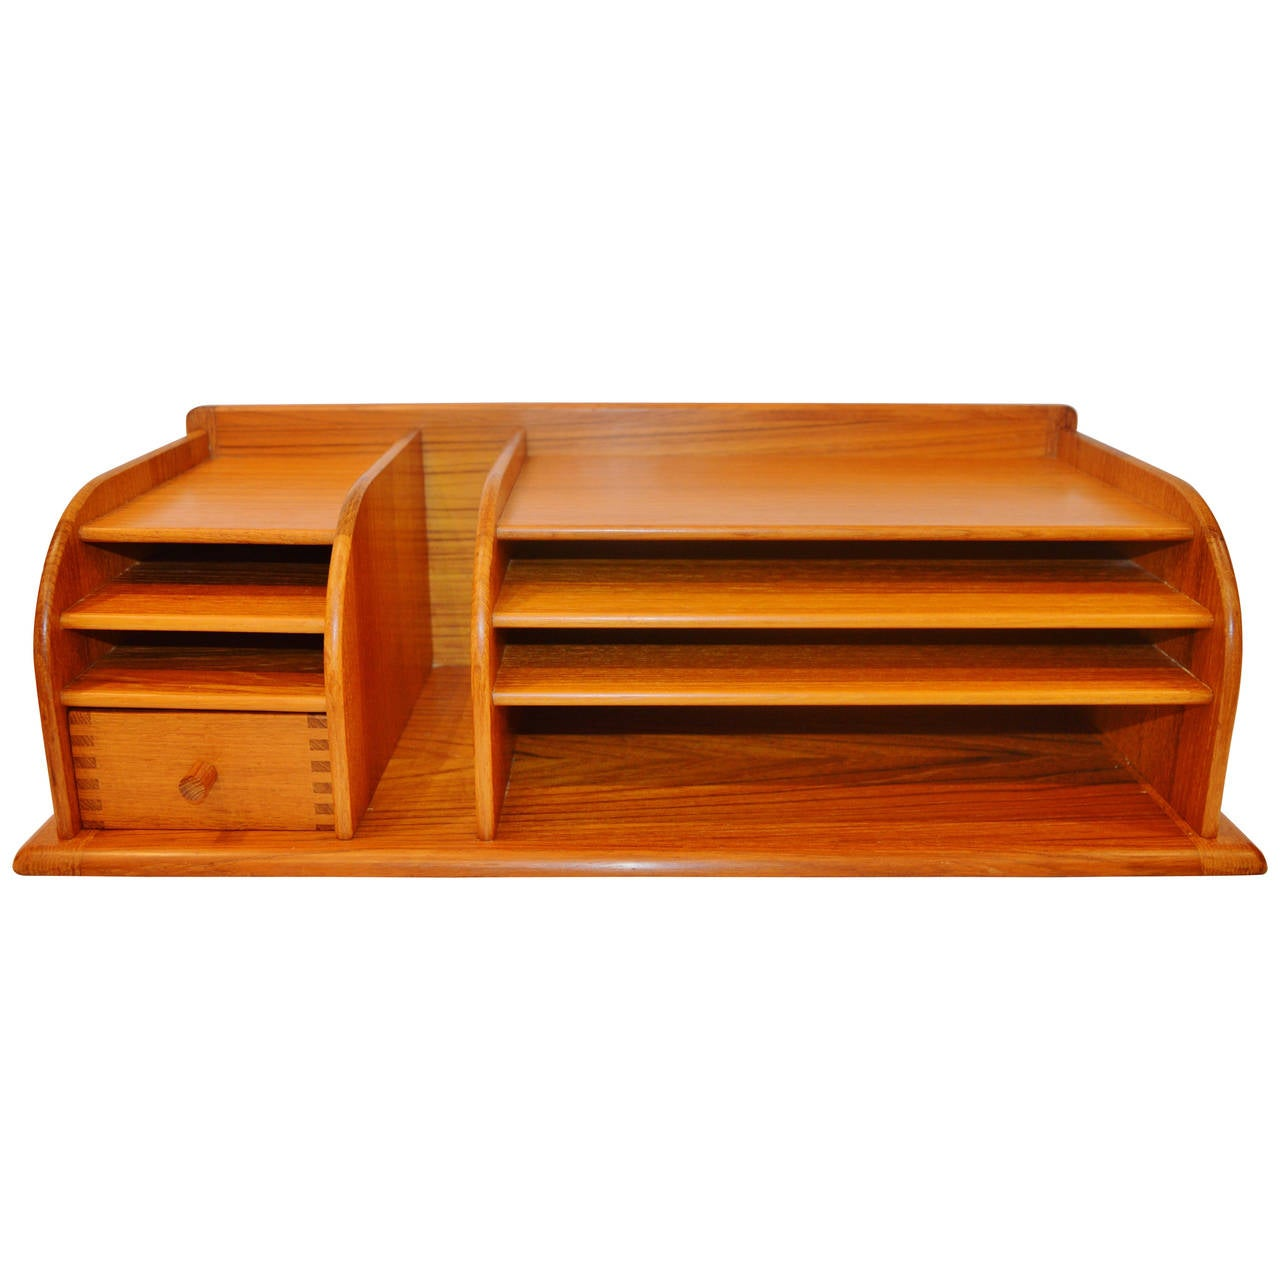 Best Danish Modern Solid Teak Desk Organizer By Kai Kristiansen This Month